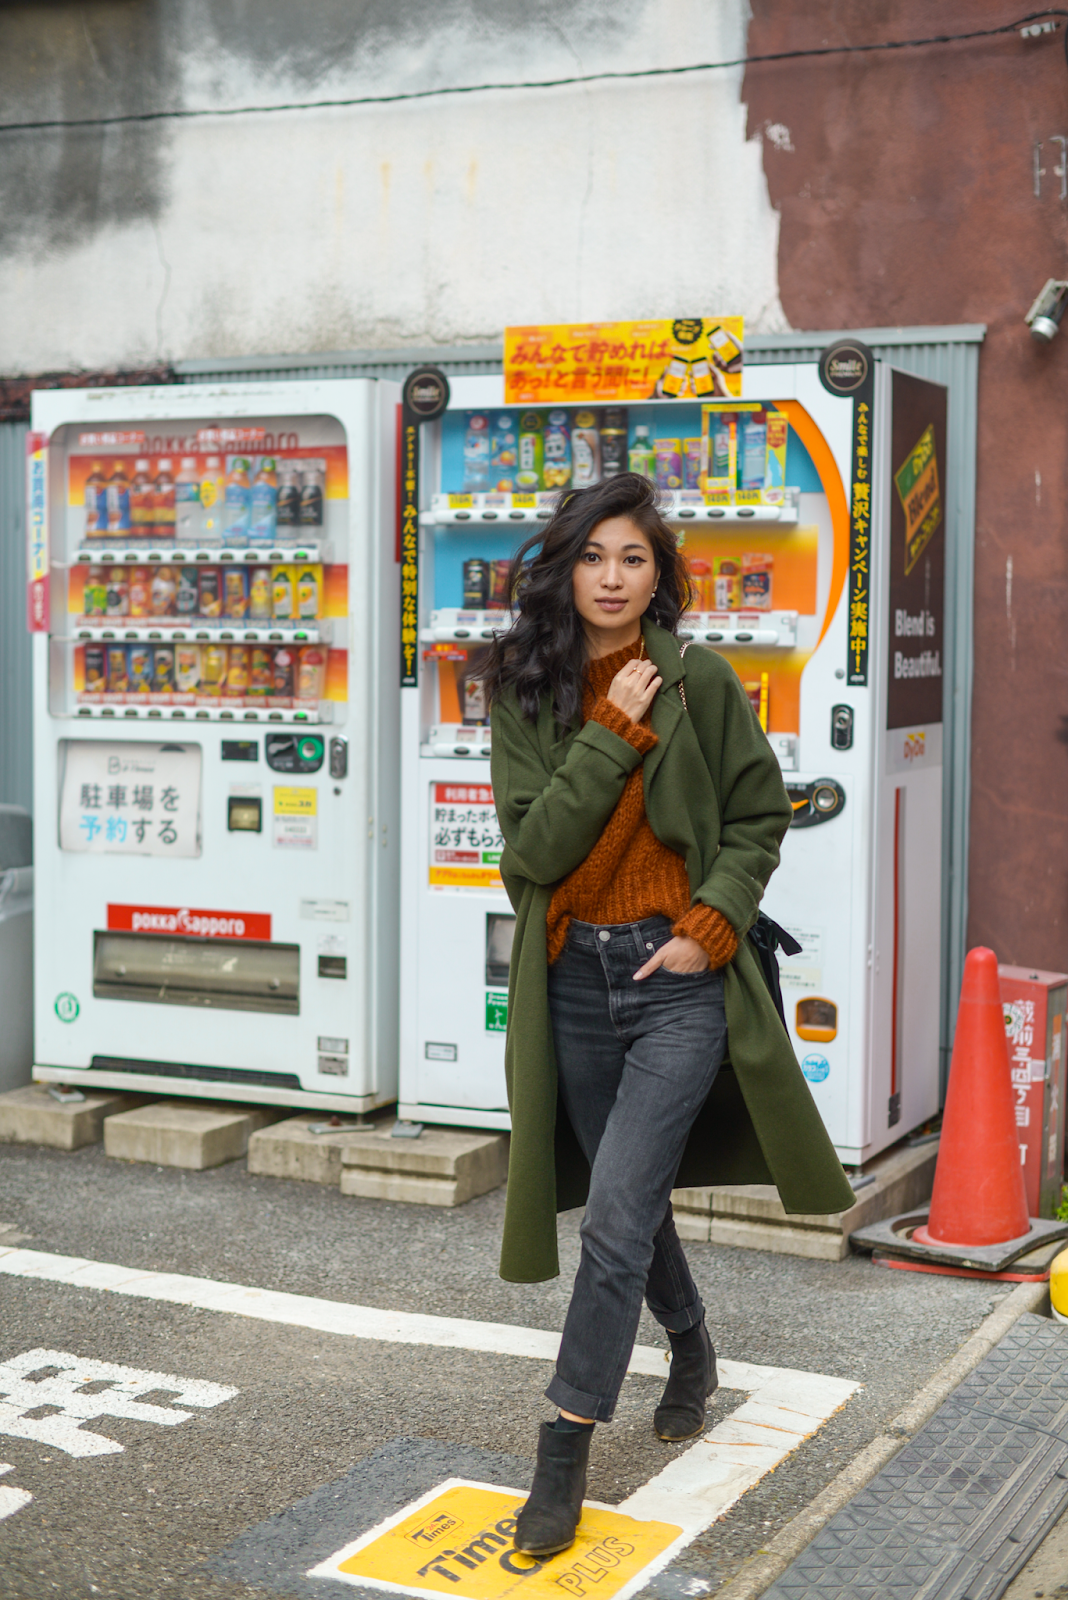 Tokyo vending machines, olive green coat outfits, how to dress for Tokyo in the fall, New York personal style blogger, New York City lifestyle - Press to Resume / 012019 - FOREVERVANNY.com